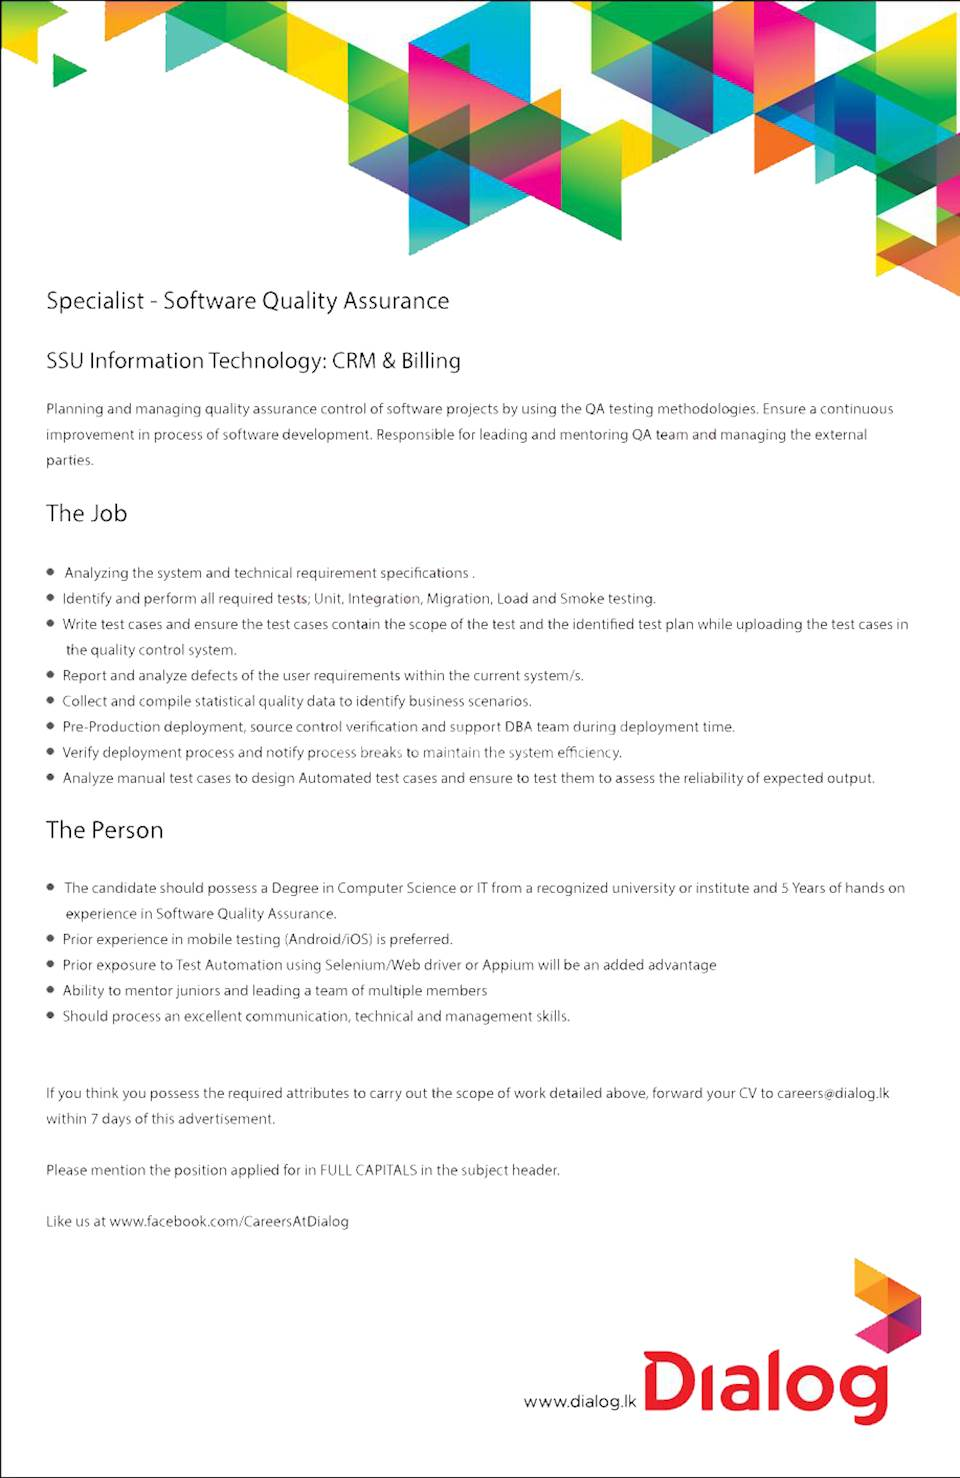 Specialist - Software Quality Assurance